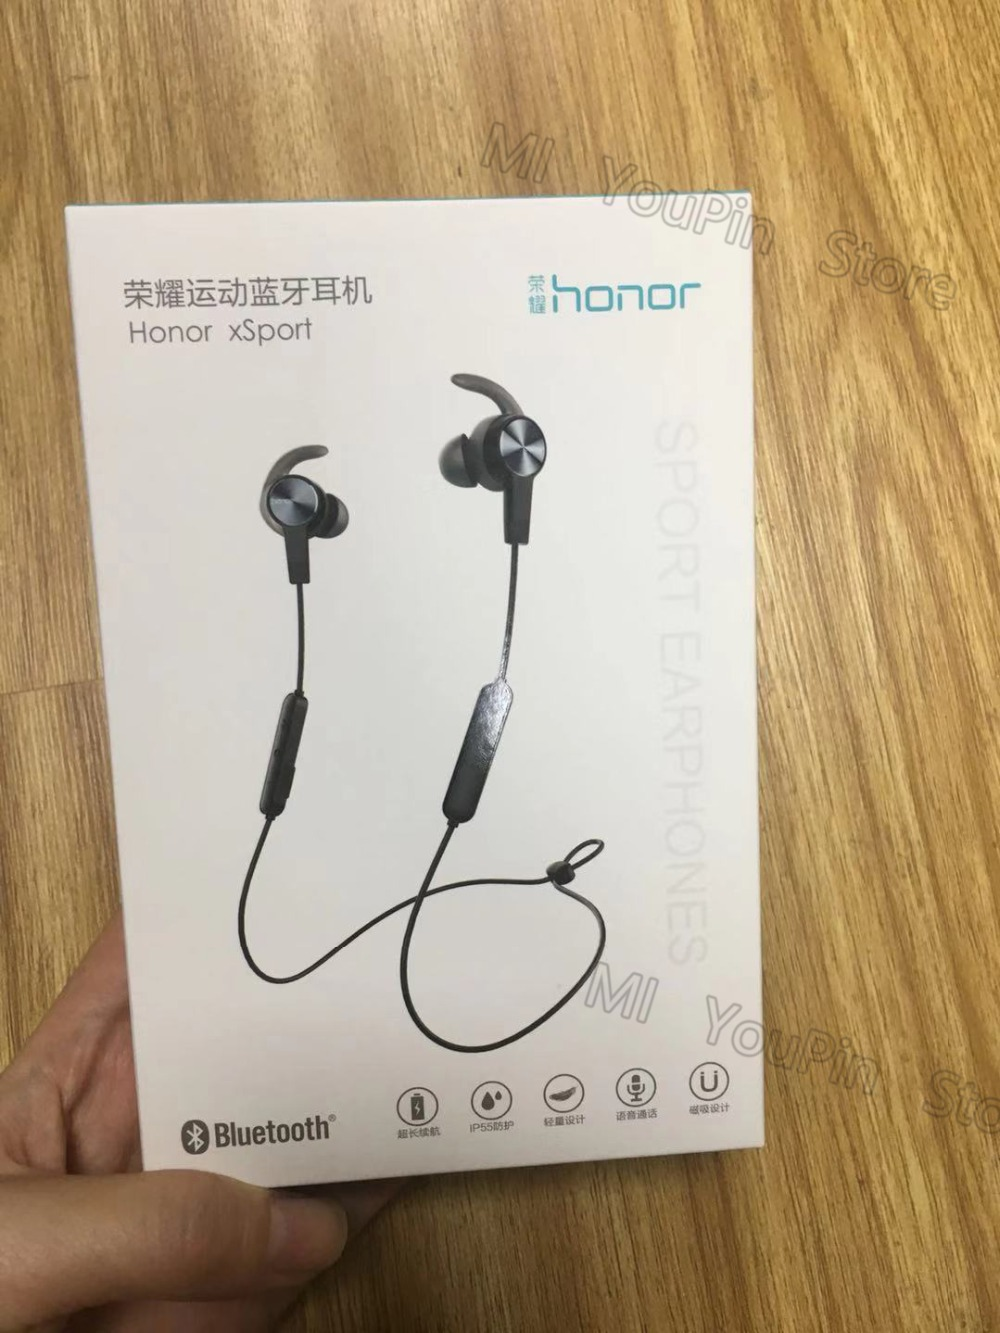 Huawei Honor xSport Bluetooth Headset AM61 IPX5 Waterproof BT4.1 Music Mic Control Wireless Earphones for Android IOS D5 (1)